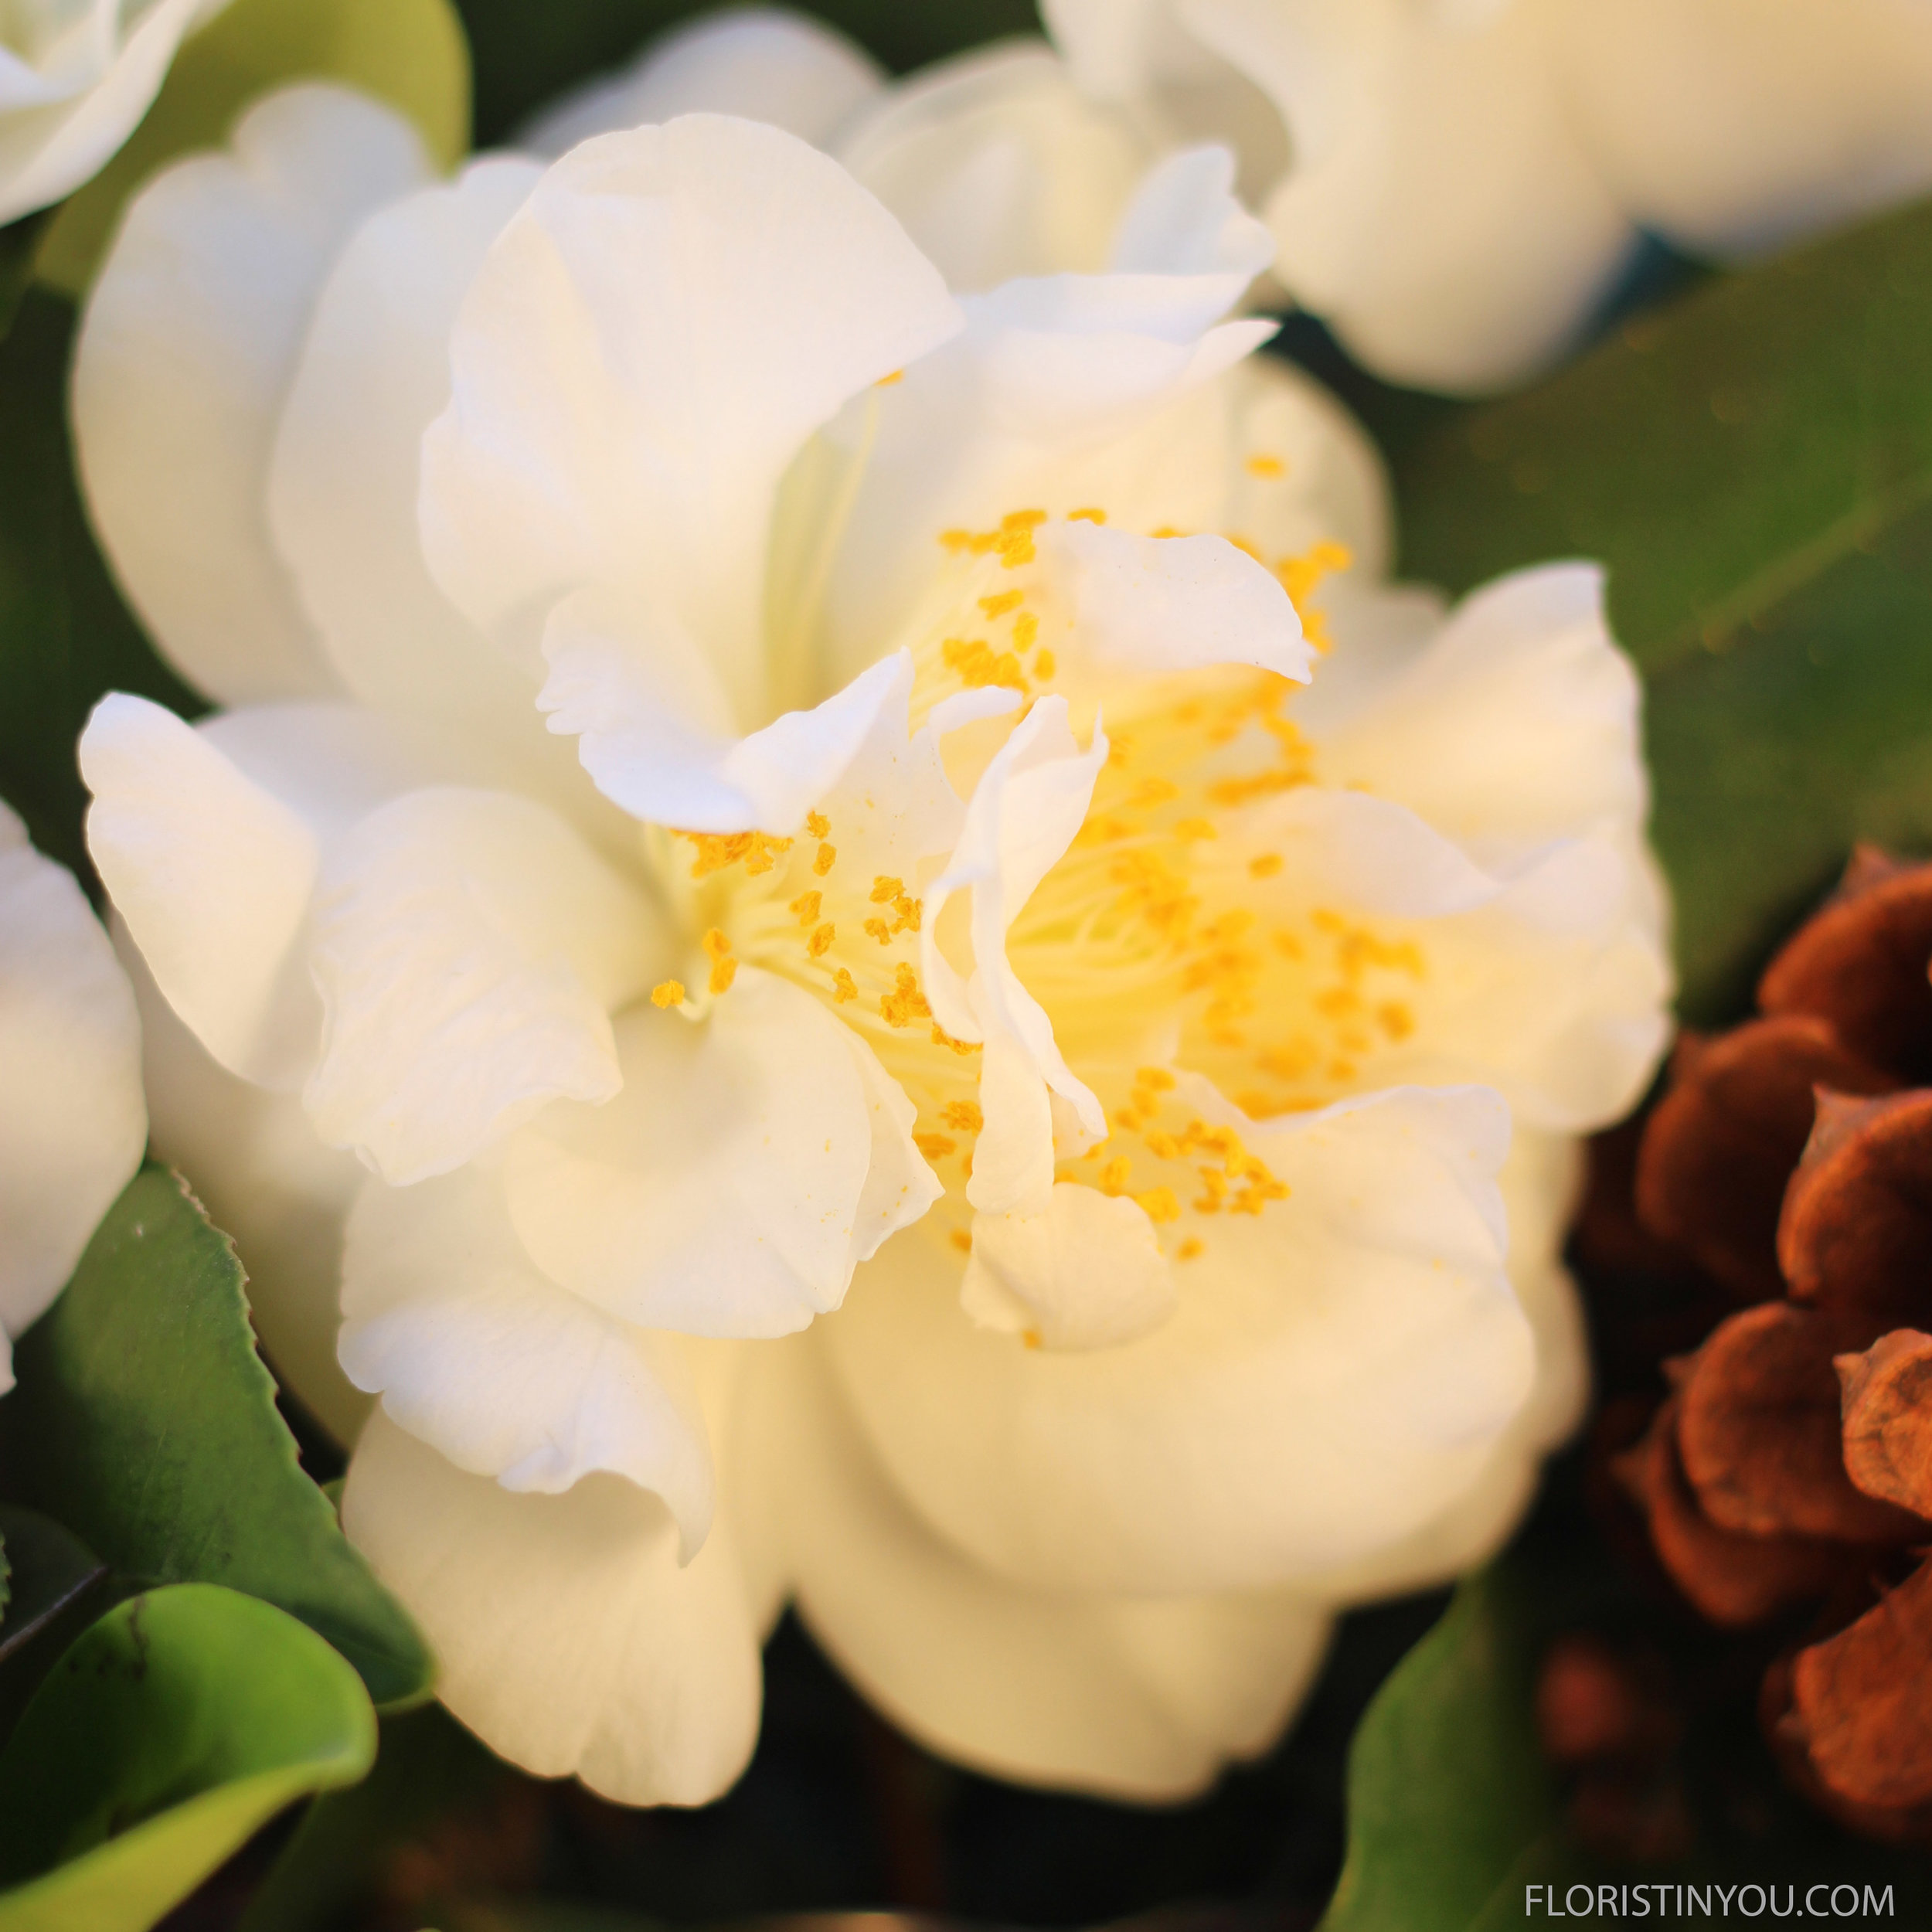 Camellia blossoms have almost a dream like quality to them.